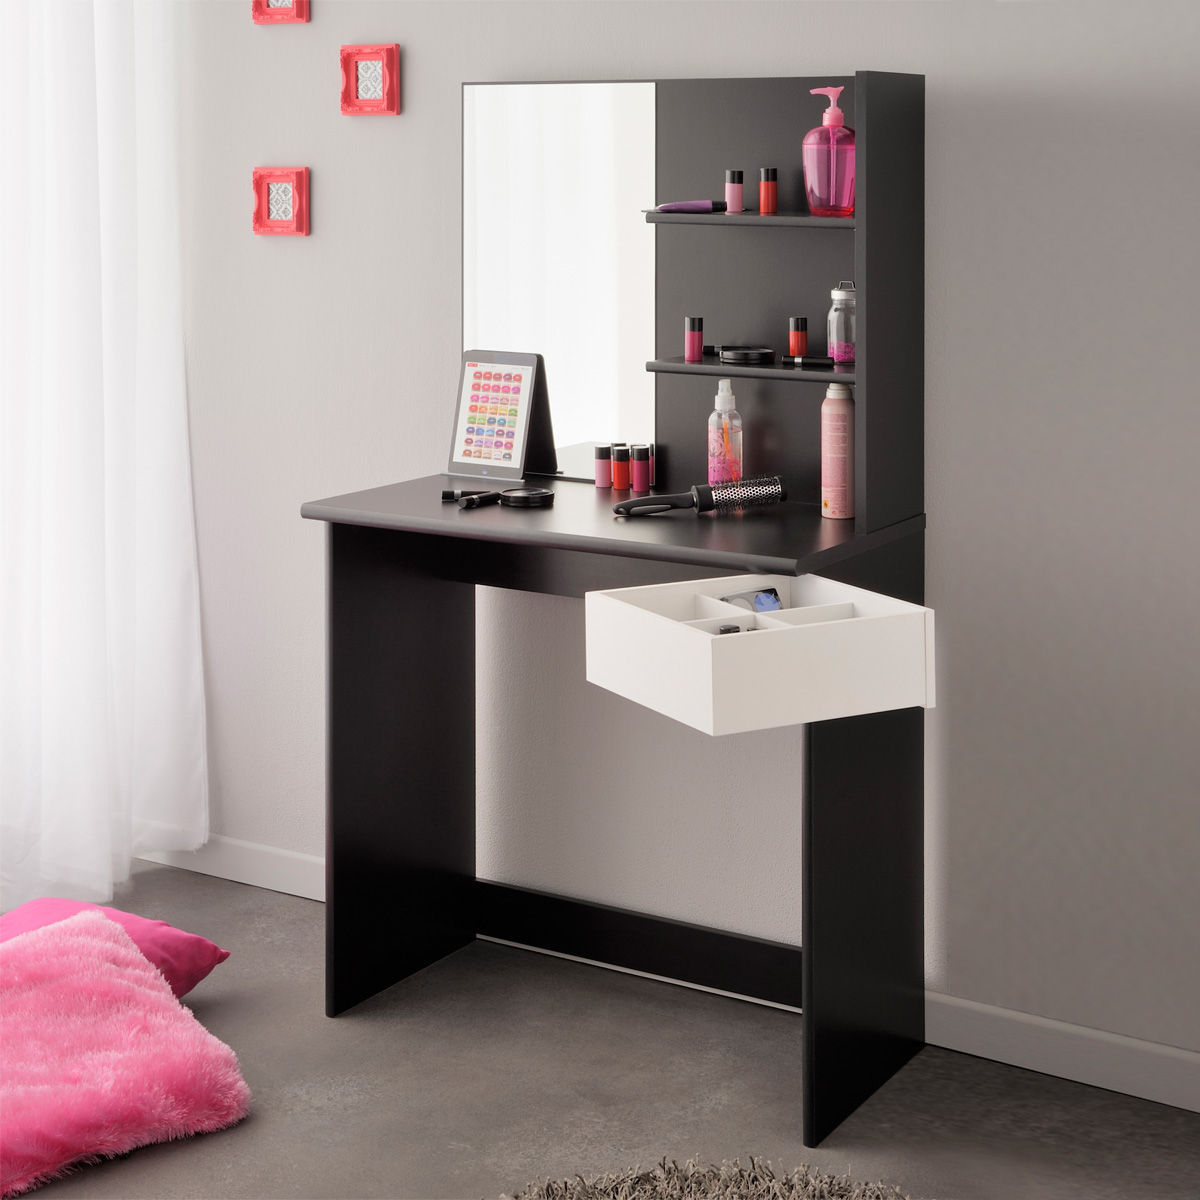 schminktisch pimpante frisierkommode kosmetiktisch in schwarz und wei ebay. Black Bedroom Furniture Sets. Home Design Ideas